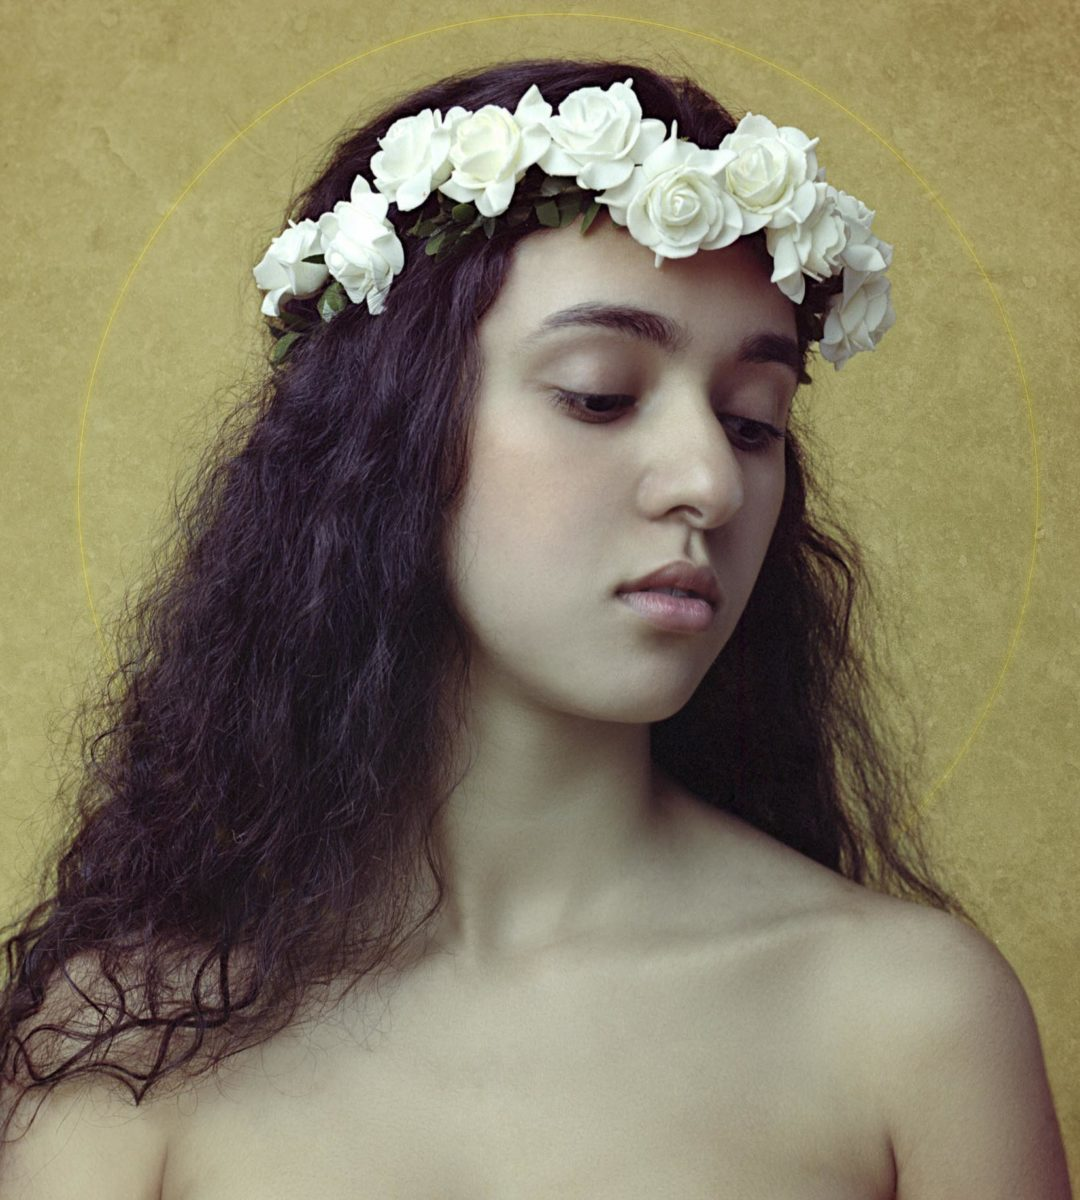 Artistic Photograph Of A Girl Wearing A Flower Crown